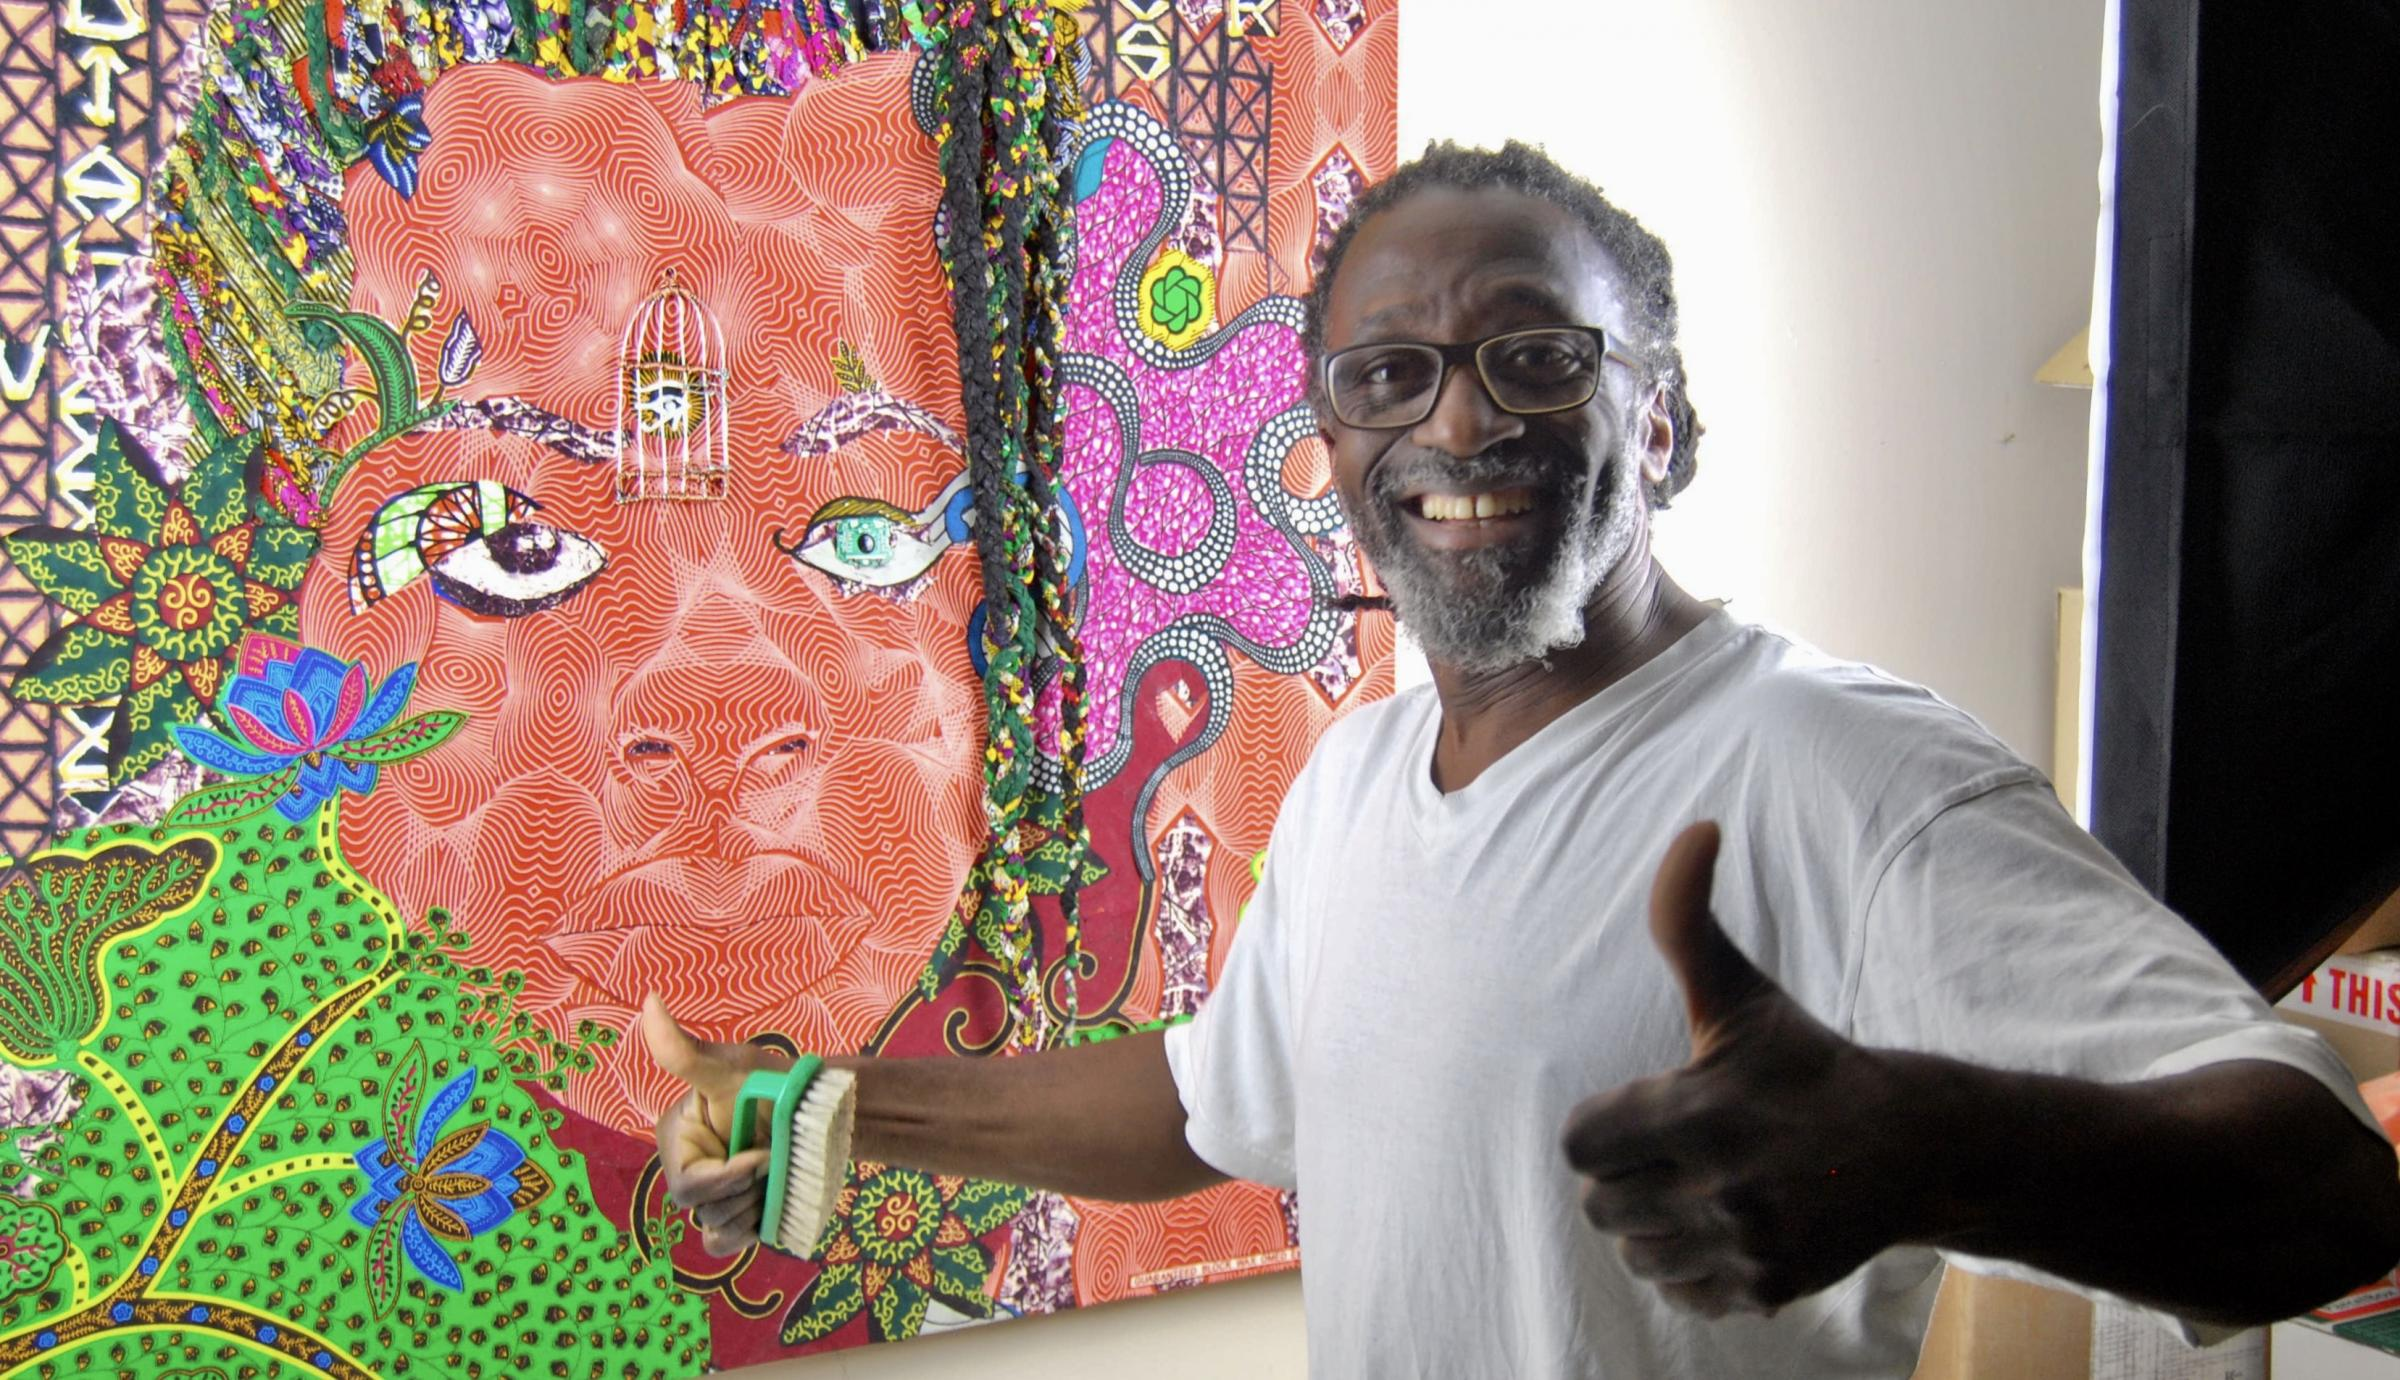 Kwame completing his artwork, Influences